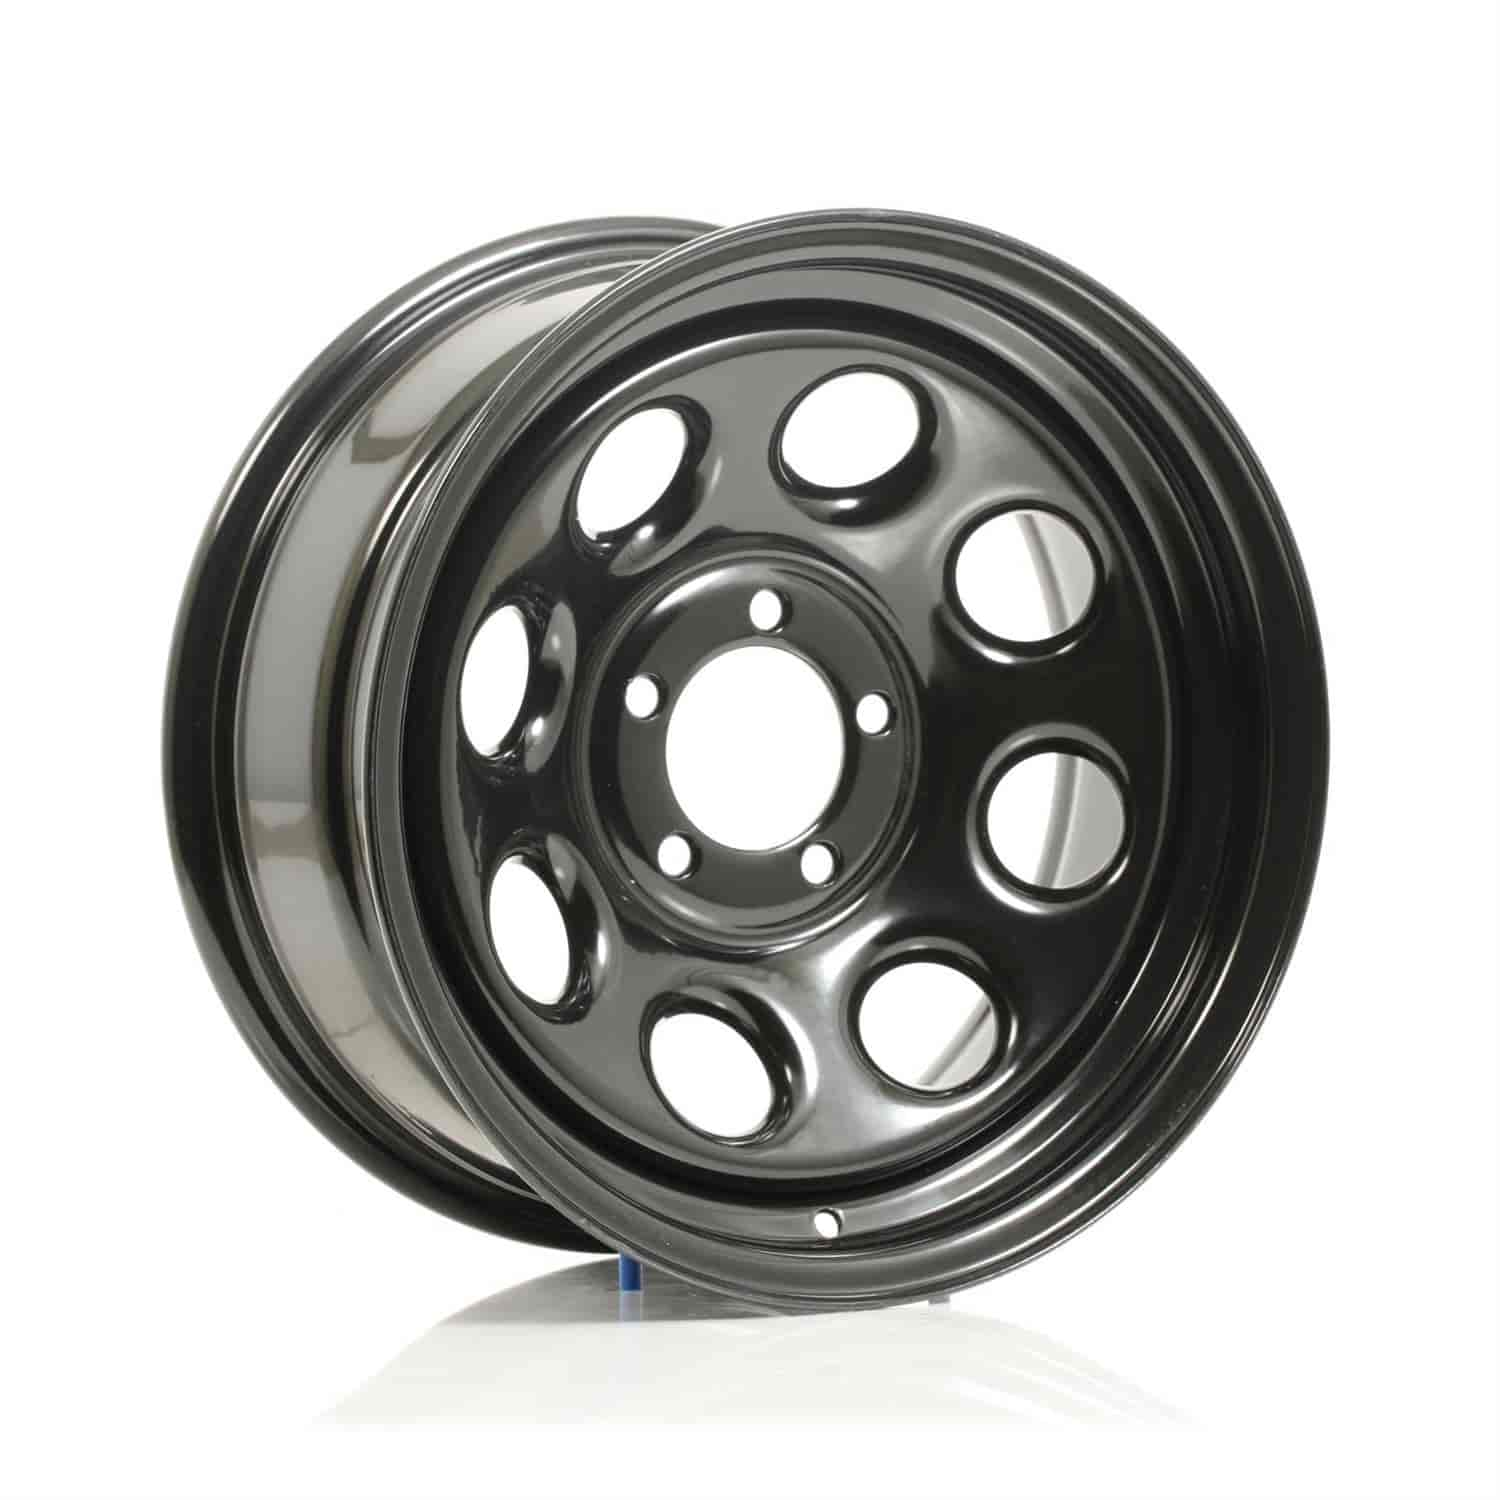 Cragar 3977712 - Cragar Black Soft 8 Wheels